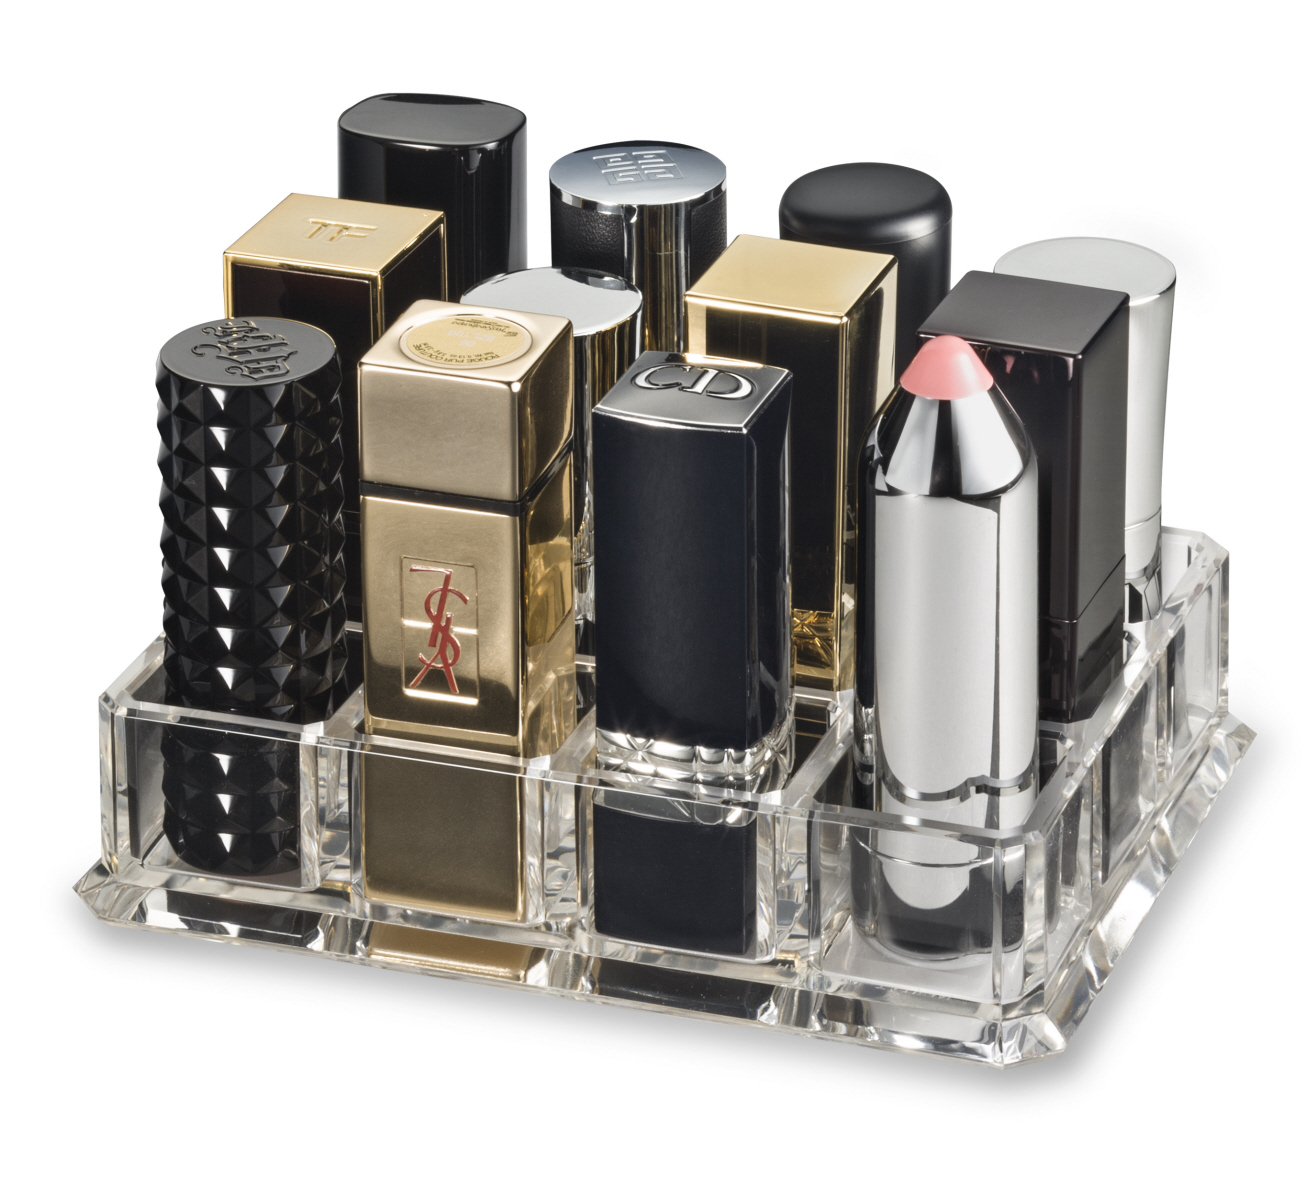 byalegory acrylic lipstick makeup organizer designed for